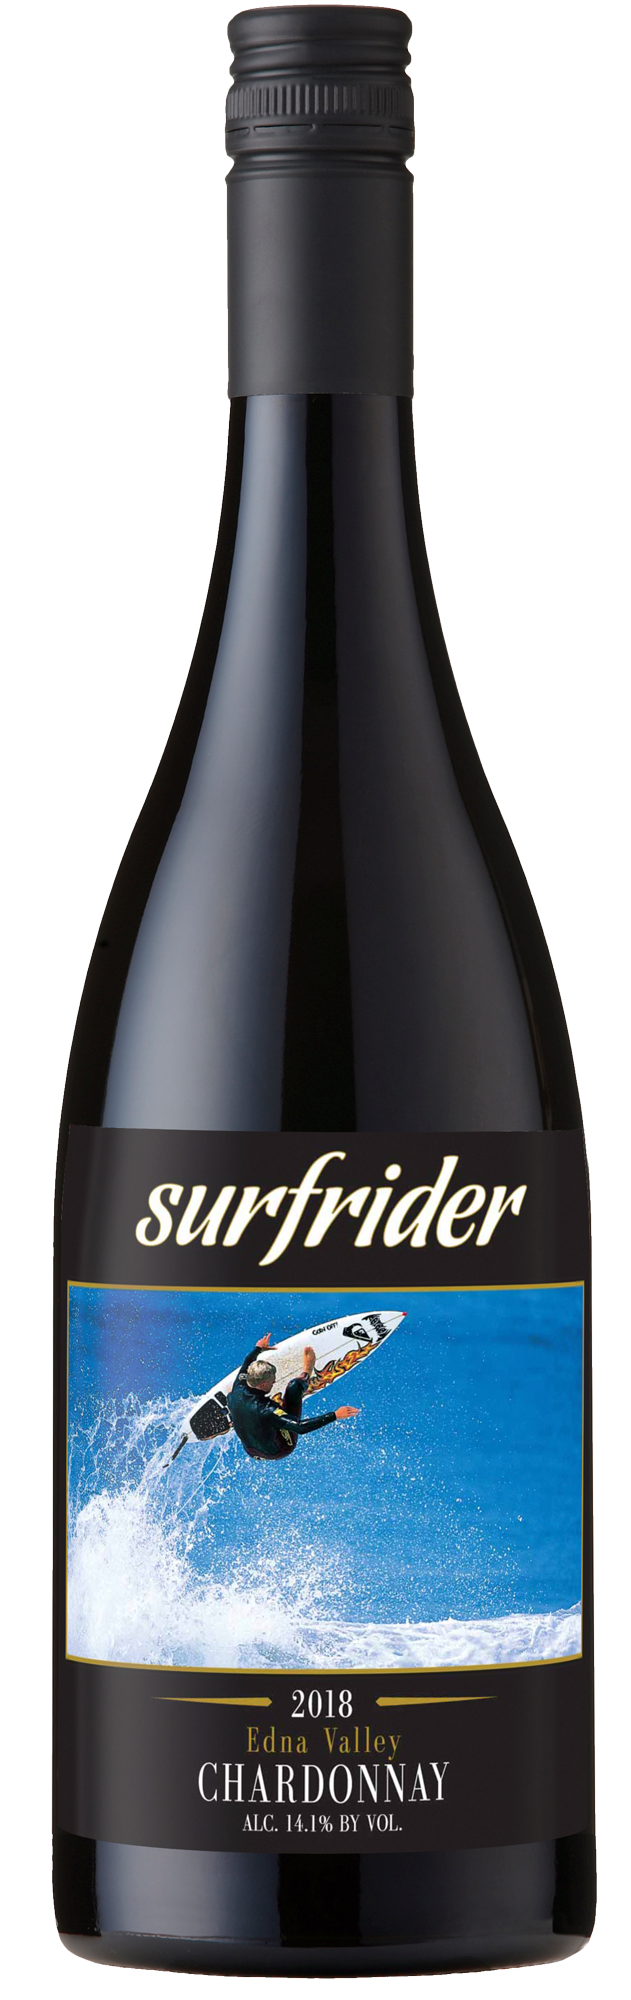 Product Image for 2018 Surfrider Chardonnay